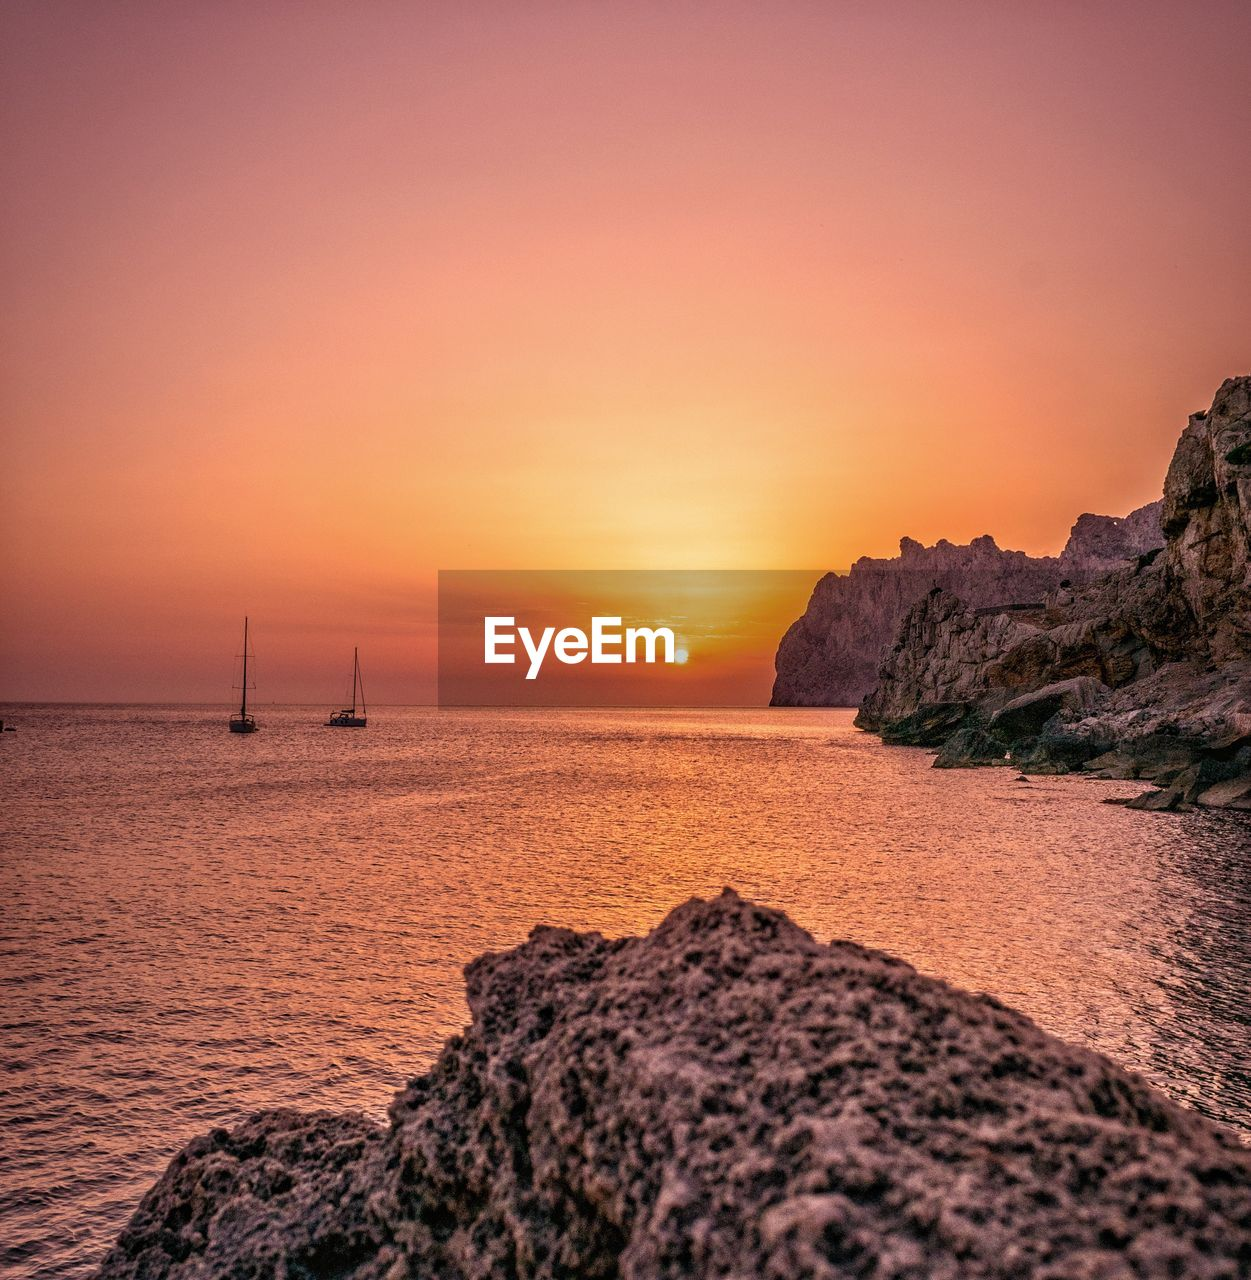 sunset, sea, sky, water, scenics - nature, beauty in nature, tranquility, rock, tranquil scene, orange color, idyllic, horizon over water, rock - object, solid, nature, horizon, no people, sun, land, outdoors, sailboat